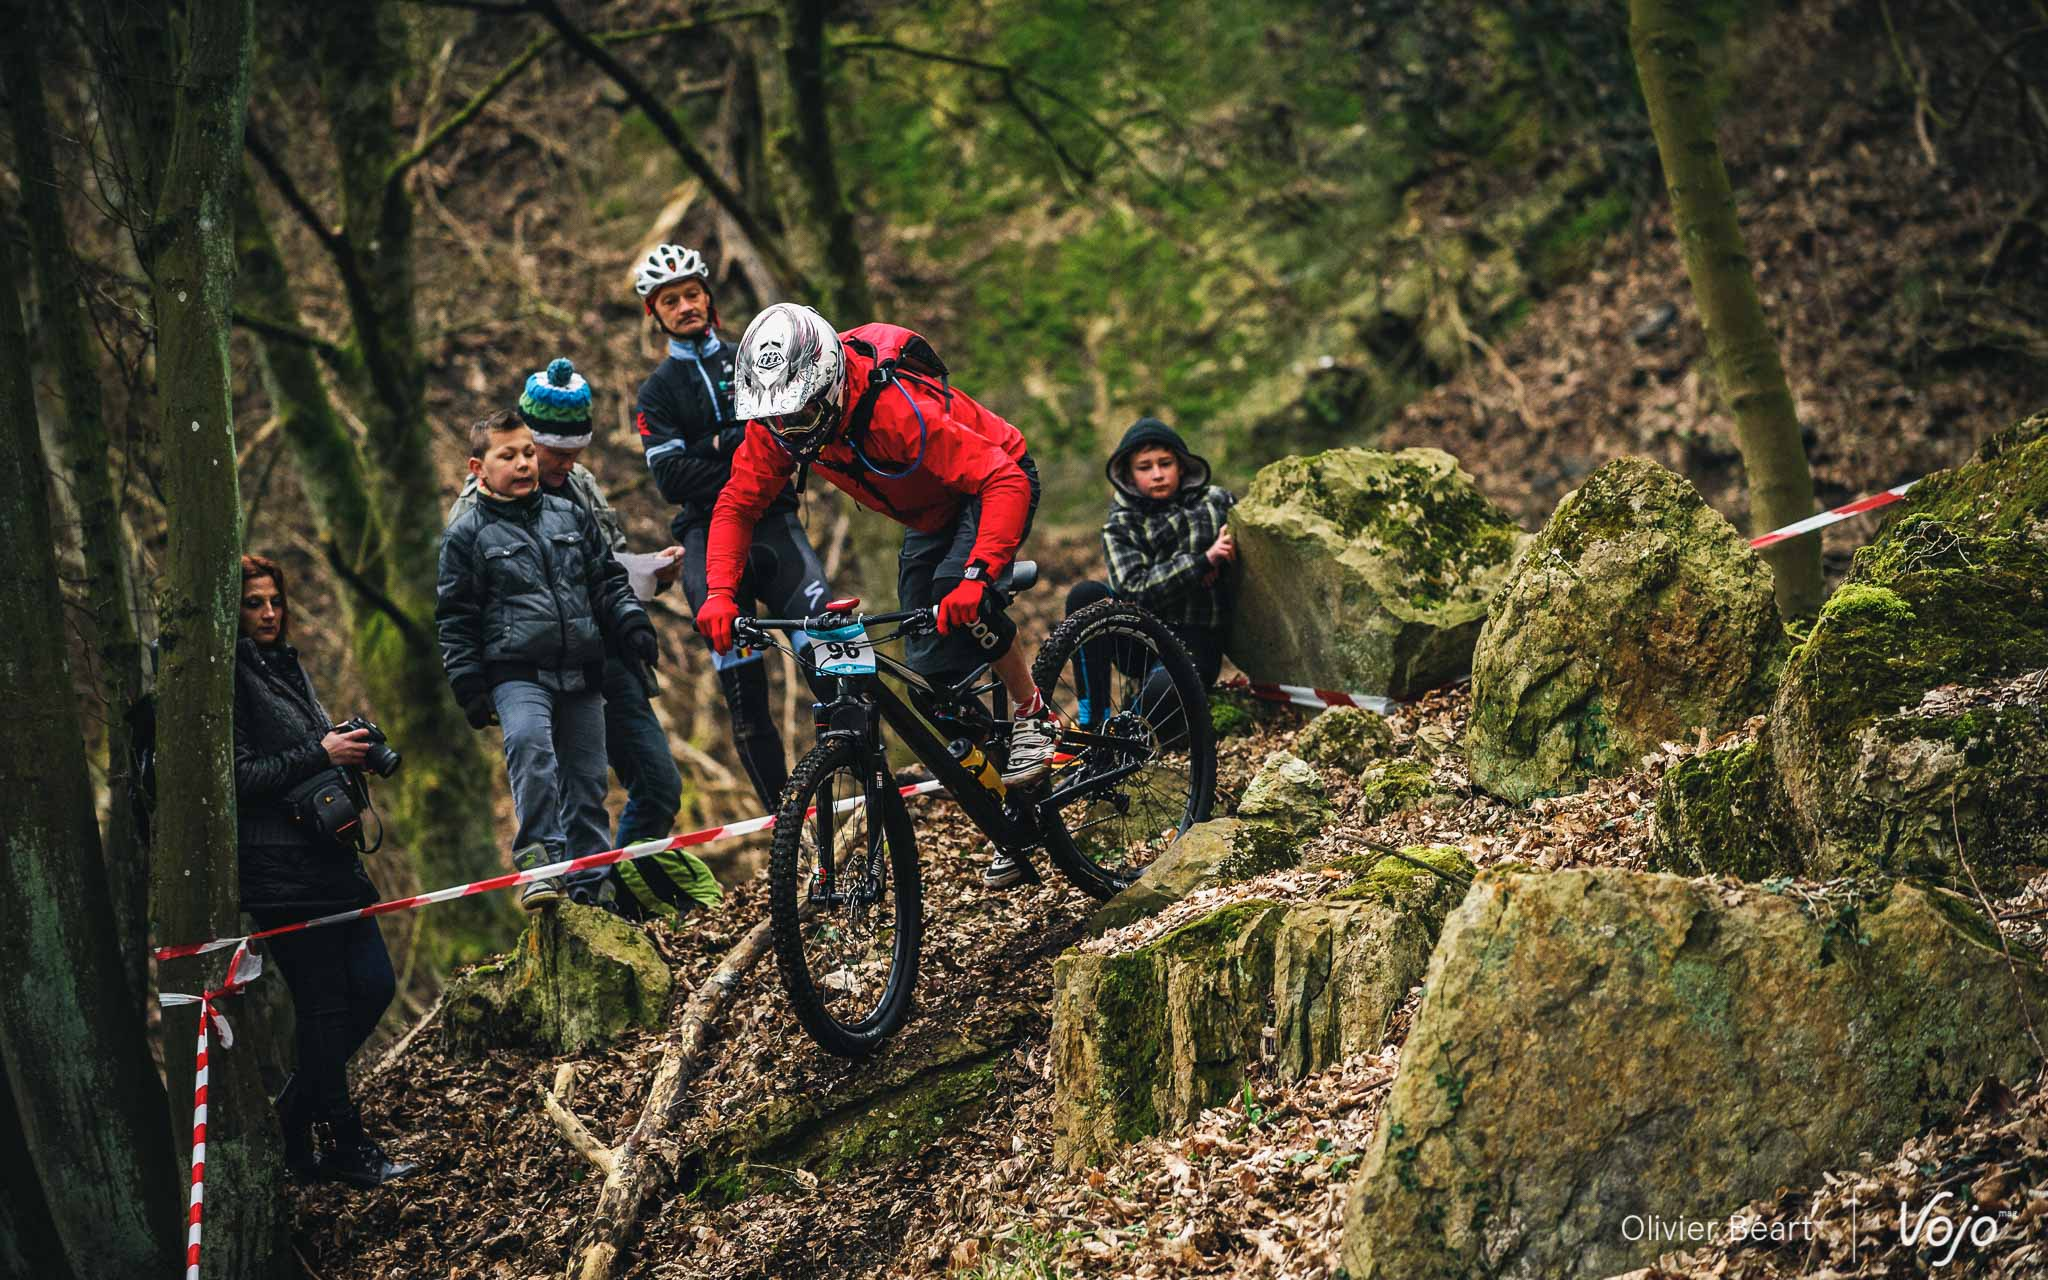 Belgian_Enduro_Cup_Chaudfontaine_2016_Copyright_OBeart_Vojomag-6